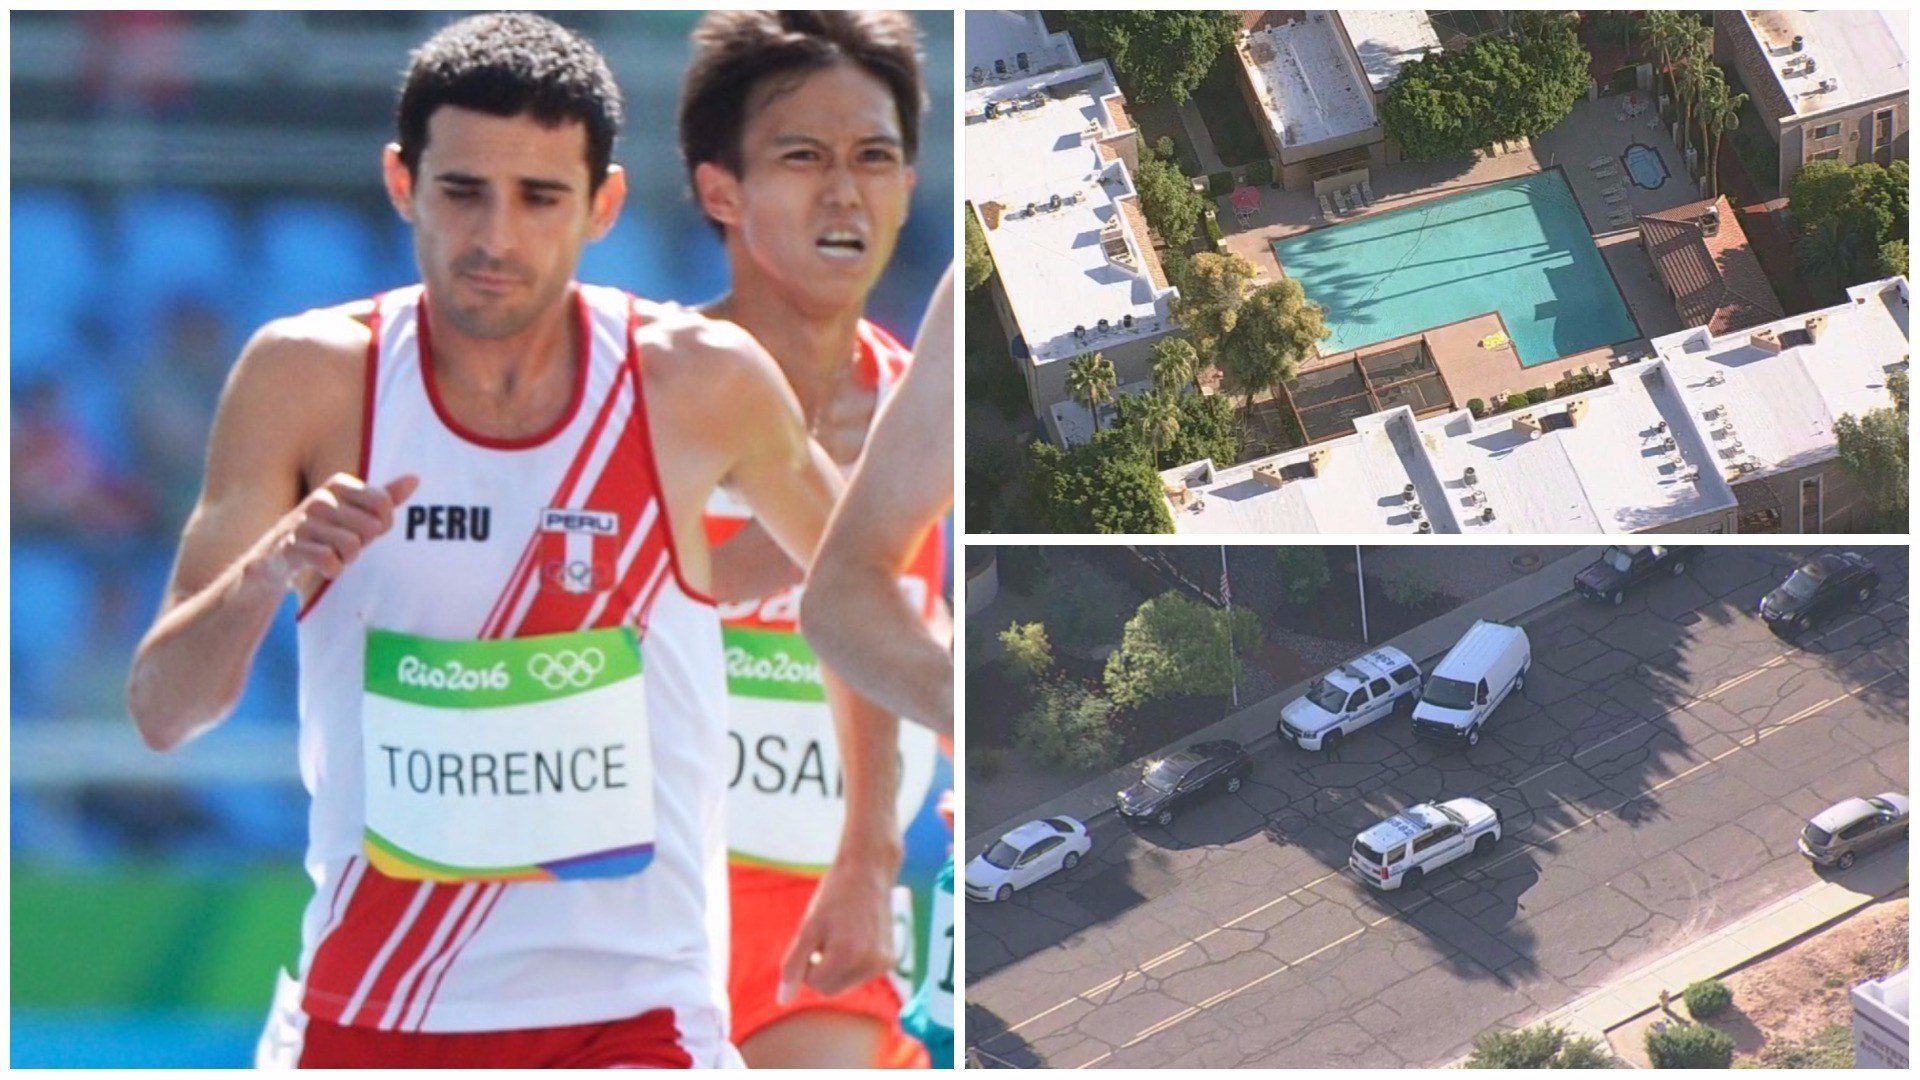 Canadian runners share tributes to David Torrence after sudden death